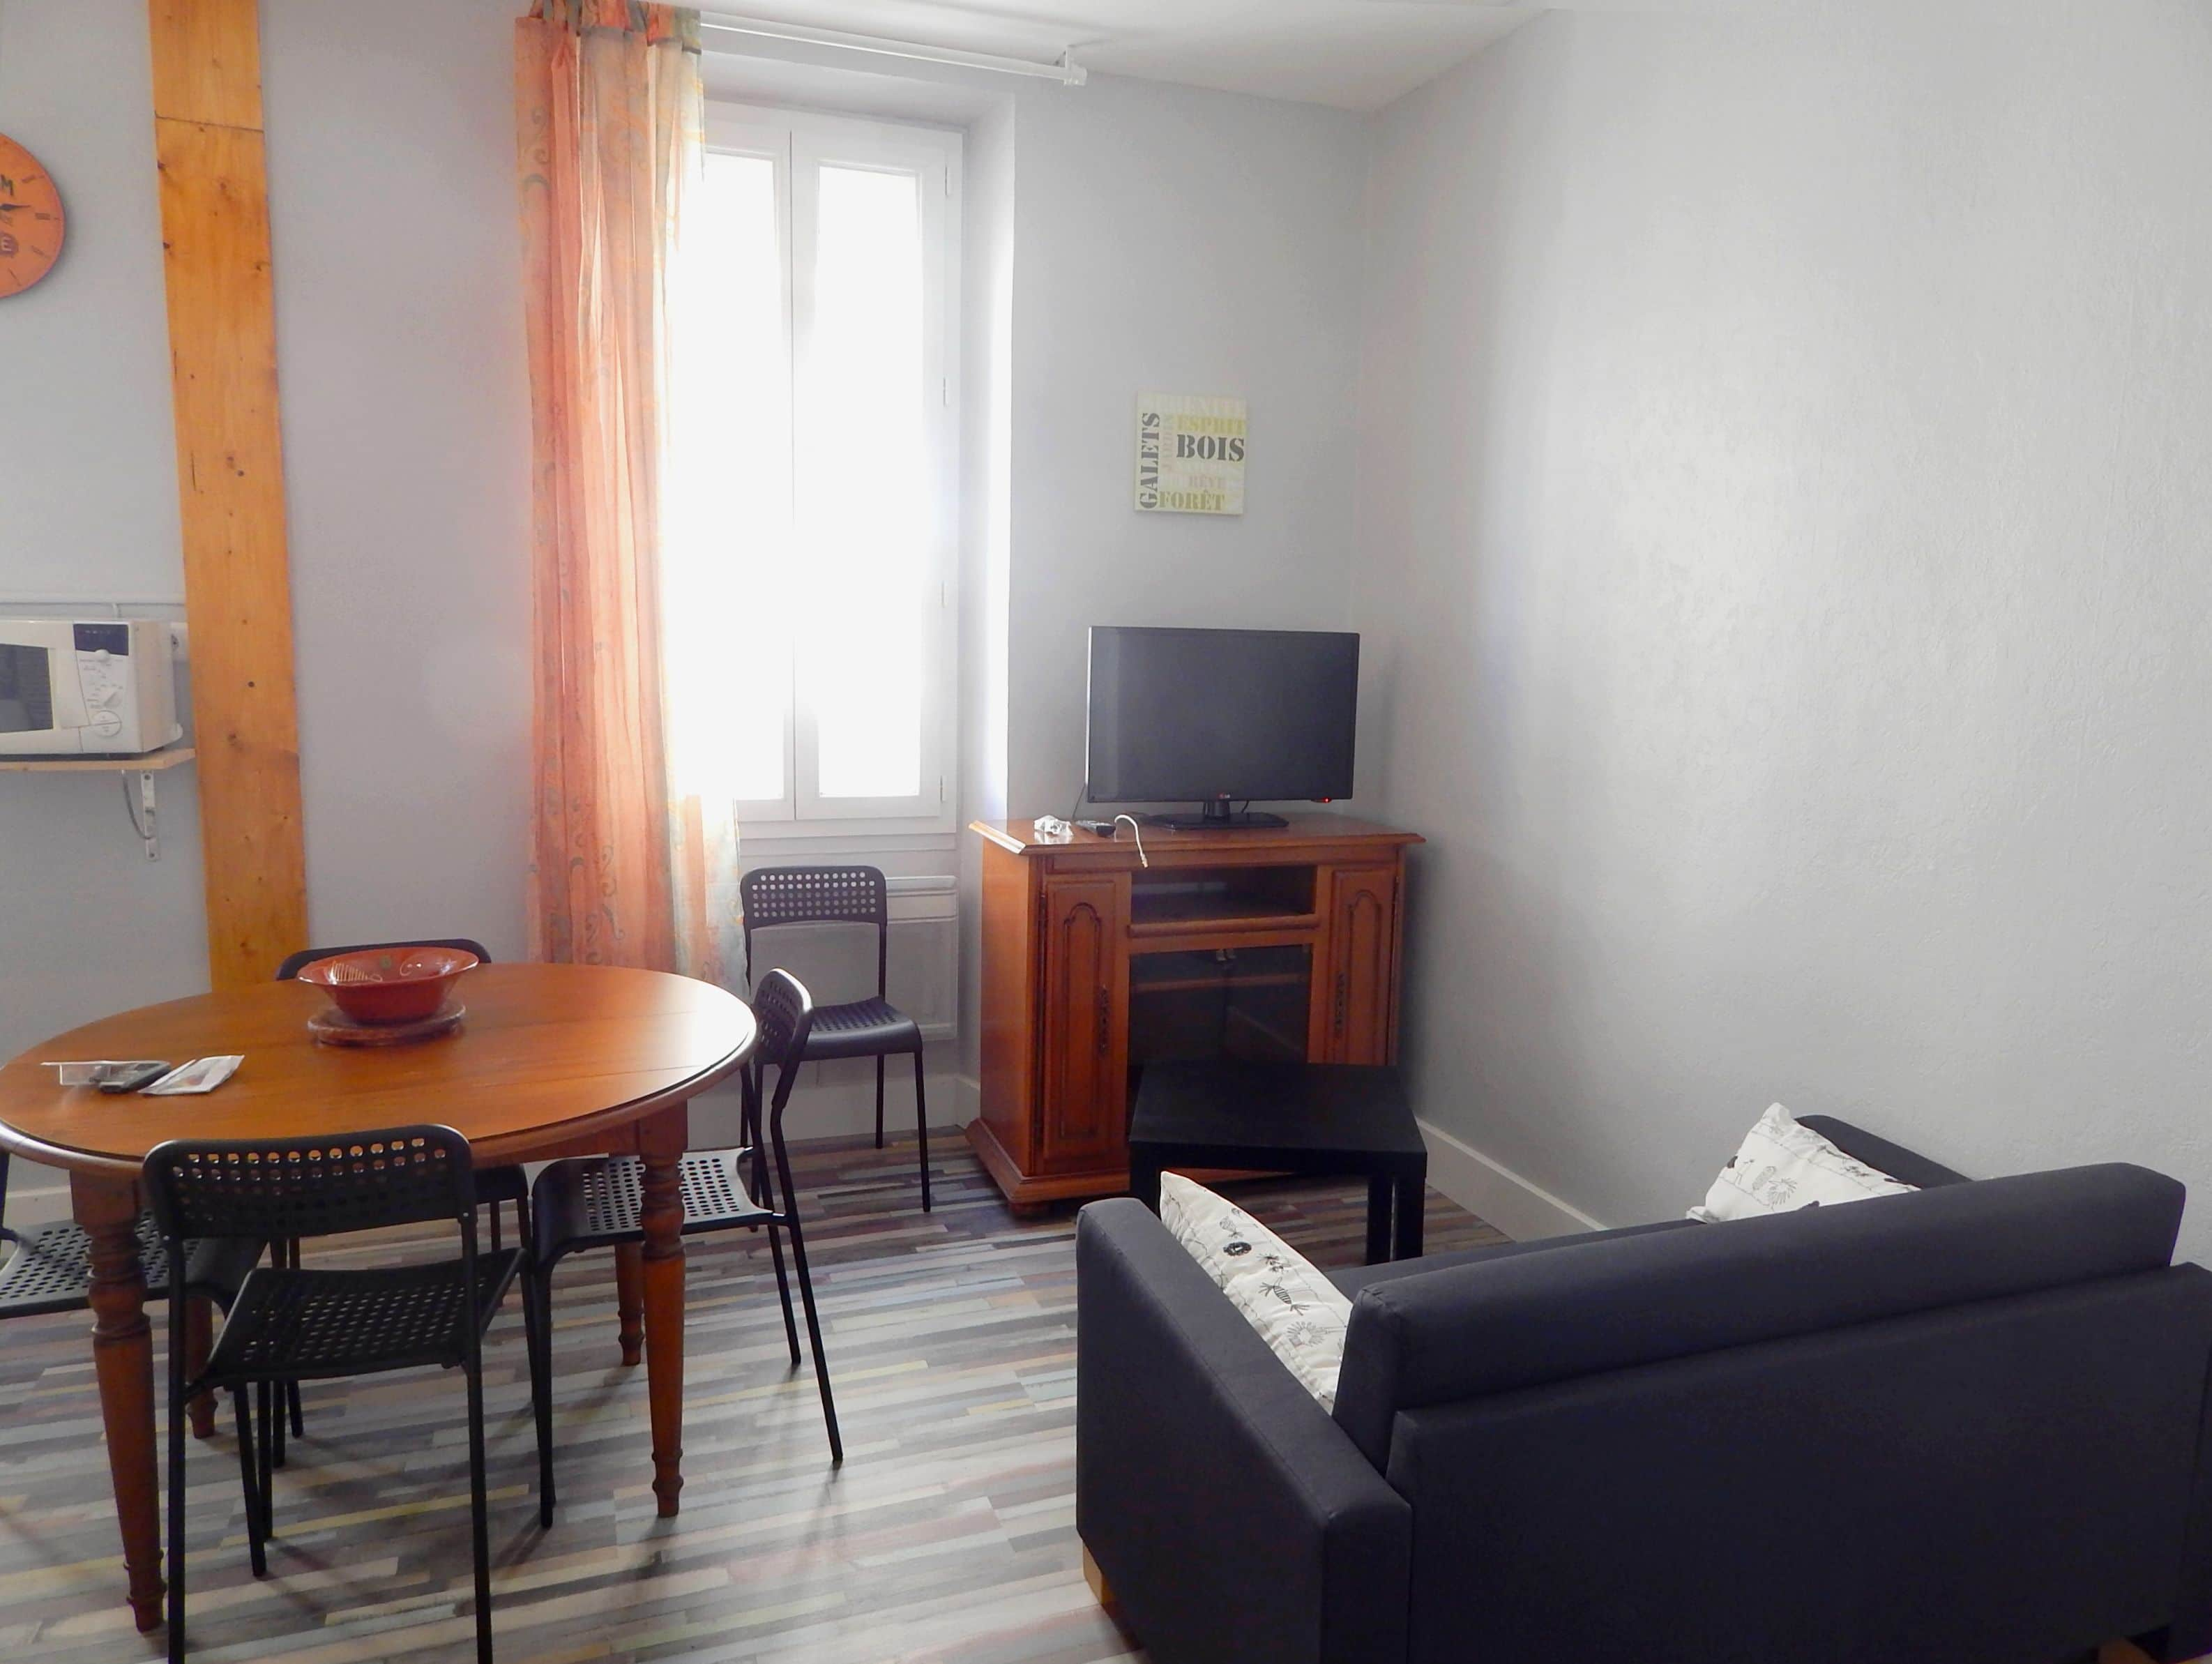 Appartement meubl a louer marseille 13010 type 2 for Location appartement meuble a marseille